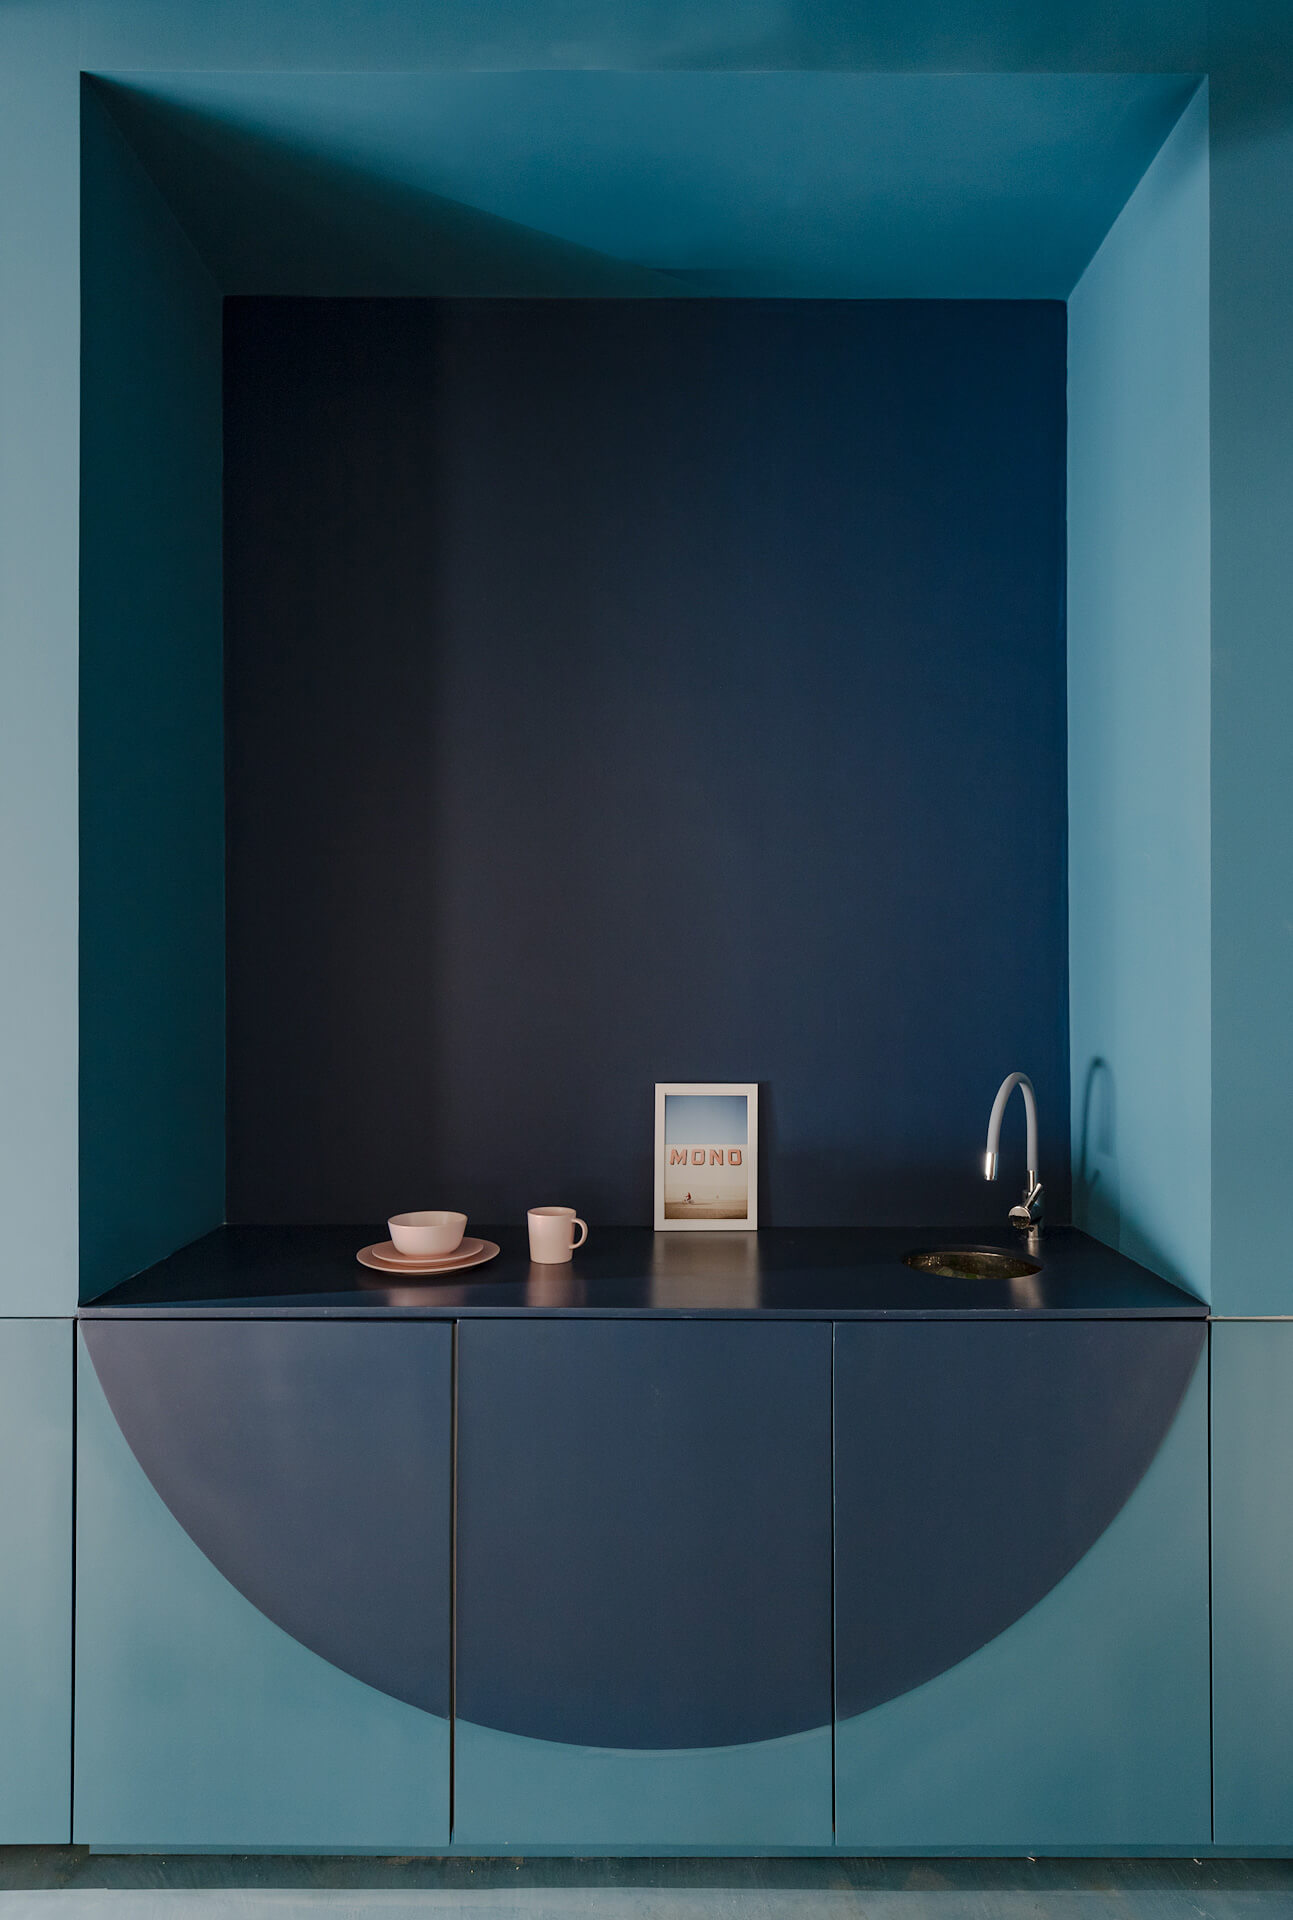 Cabinets and sink painted in two shades of blue | Fibras Orientadas interior office designed by Juan Alberto Andrade and María José Váscones | STIRworld